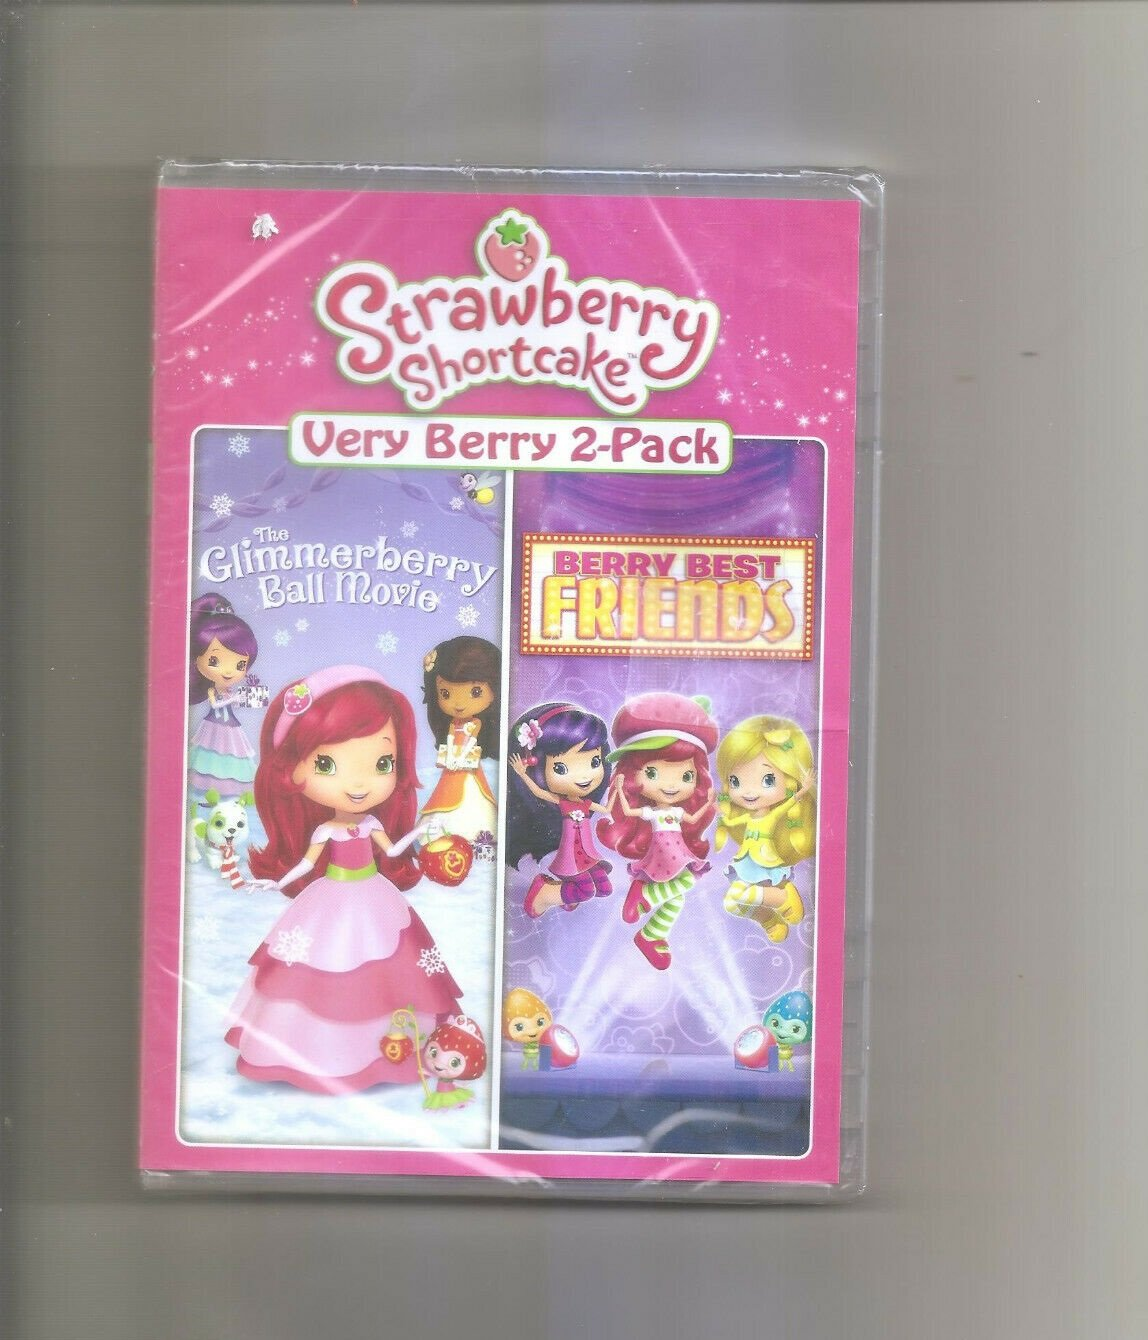 Strawberry Shortcake Very Berry 2-Pack: The Glimmerberry Ball Movie/Berry...